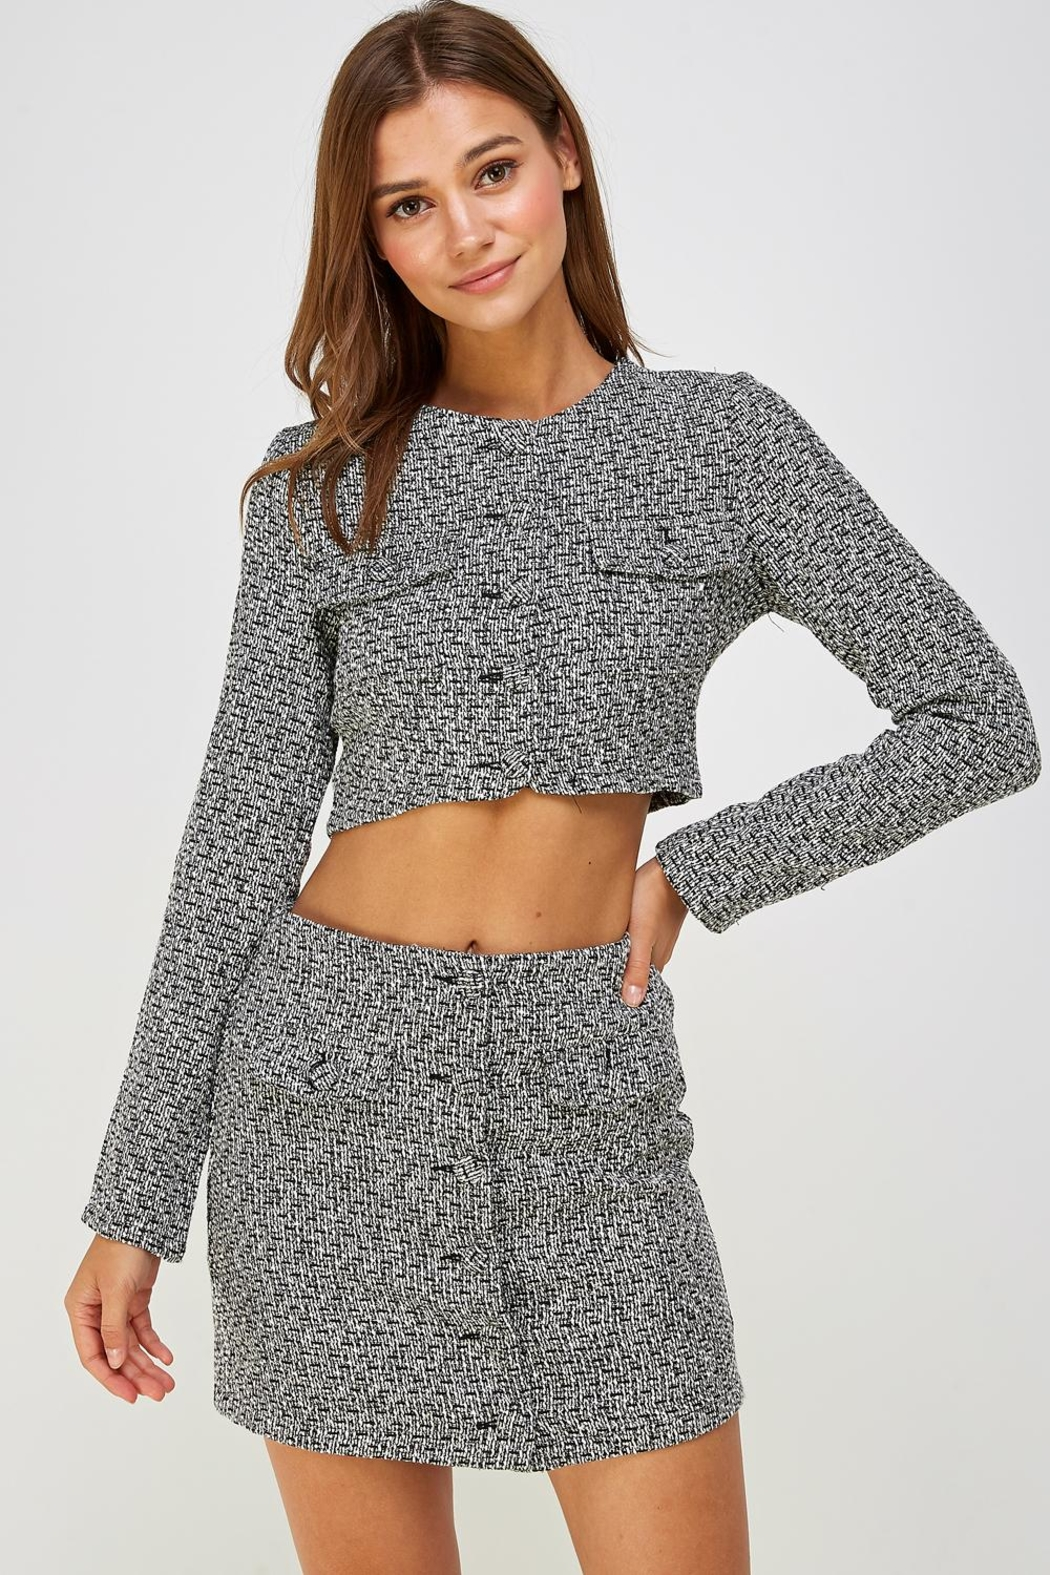 Wild Honey Tweed Skirt Set - Main Image